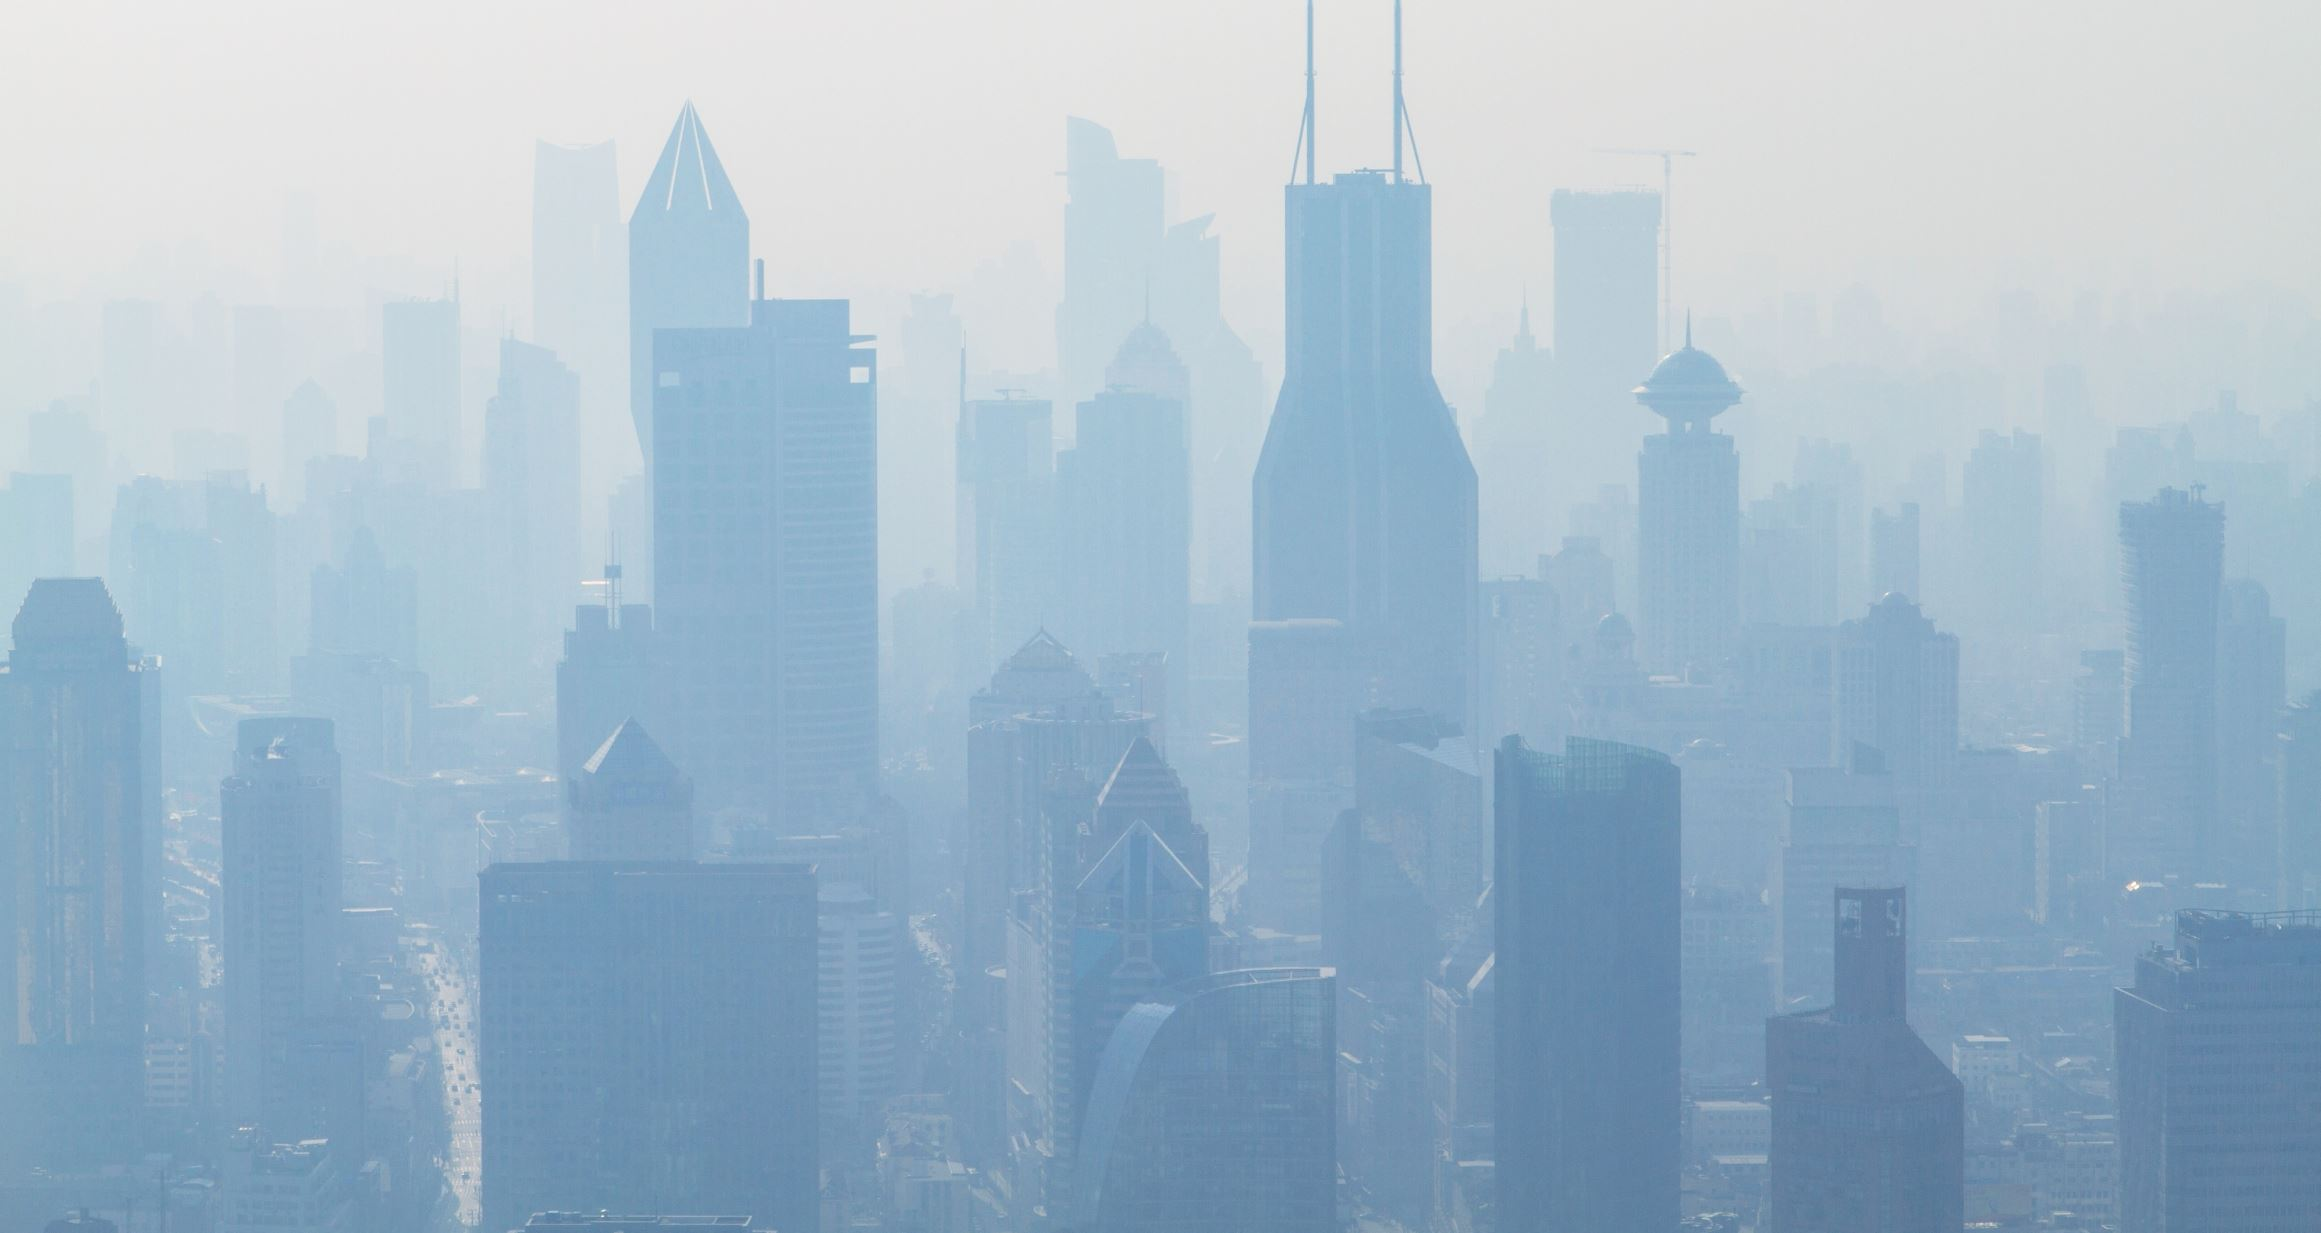 A city covered in smog, a type of severe air pollution: Image Credit:  Holger Link via Unsplash